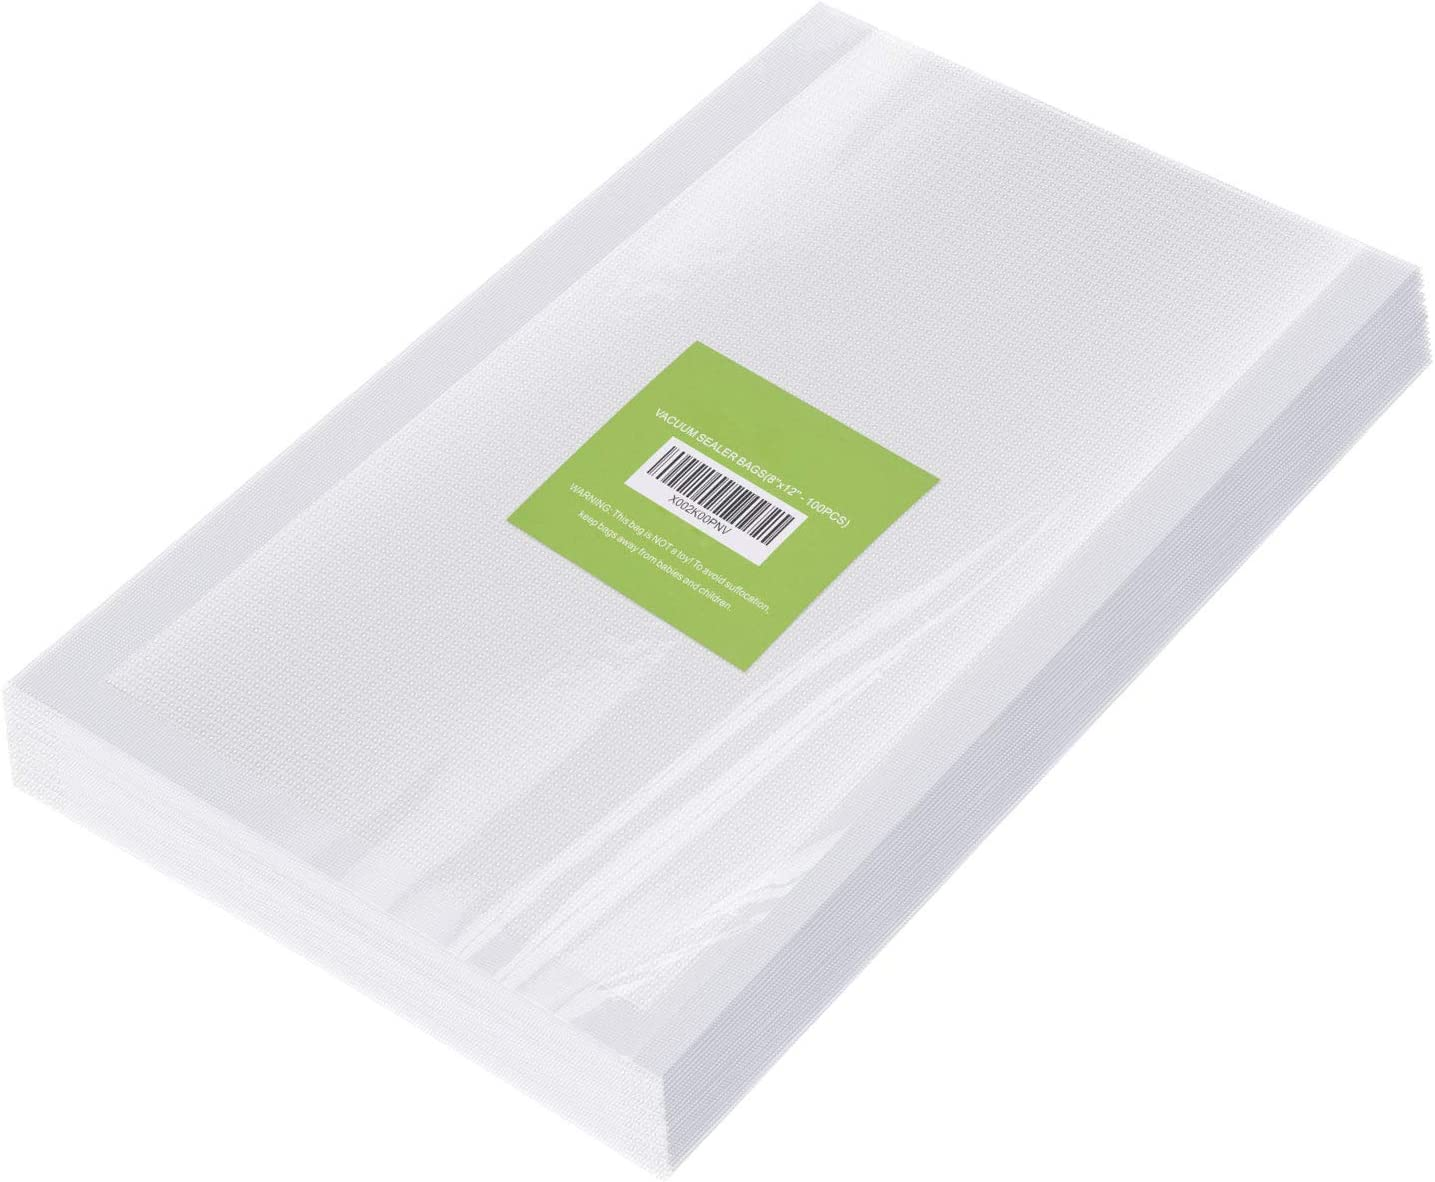 100 Counts Vacuum Sealer Bags - Heavy Duty Commercial Grade Food Saver Pre-cut Bags with Size 8''x 12'' - Sous Vide Vac Bag Perfect for Heat Seal Food Storage, BPA Free